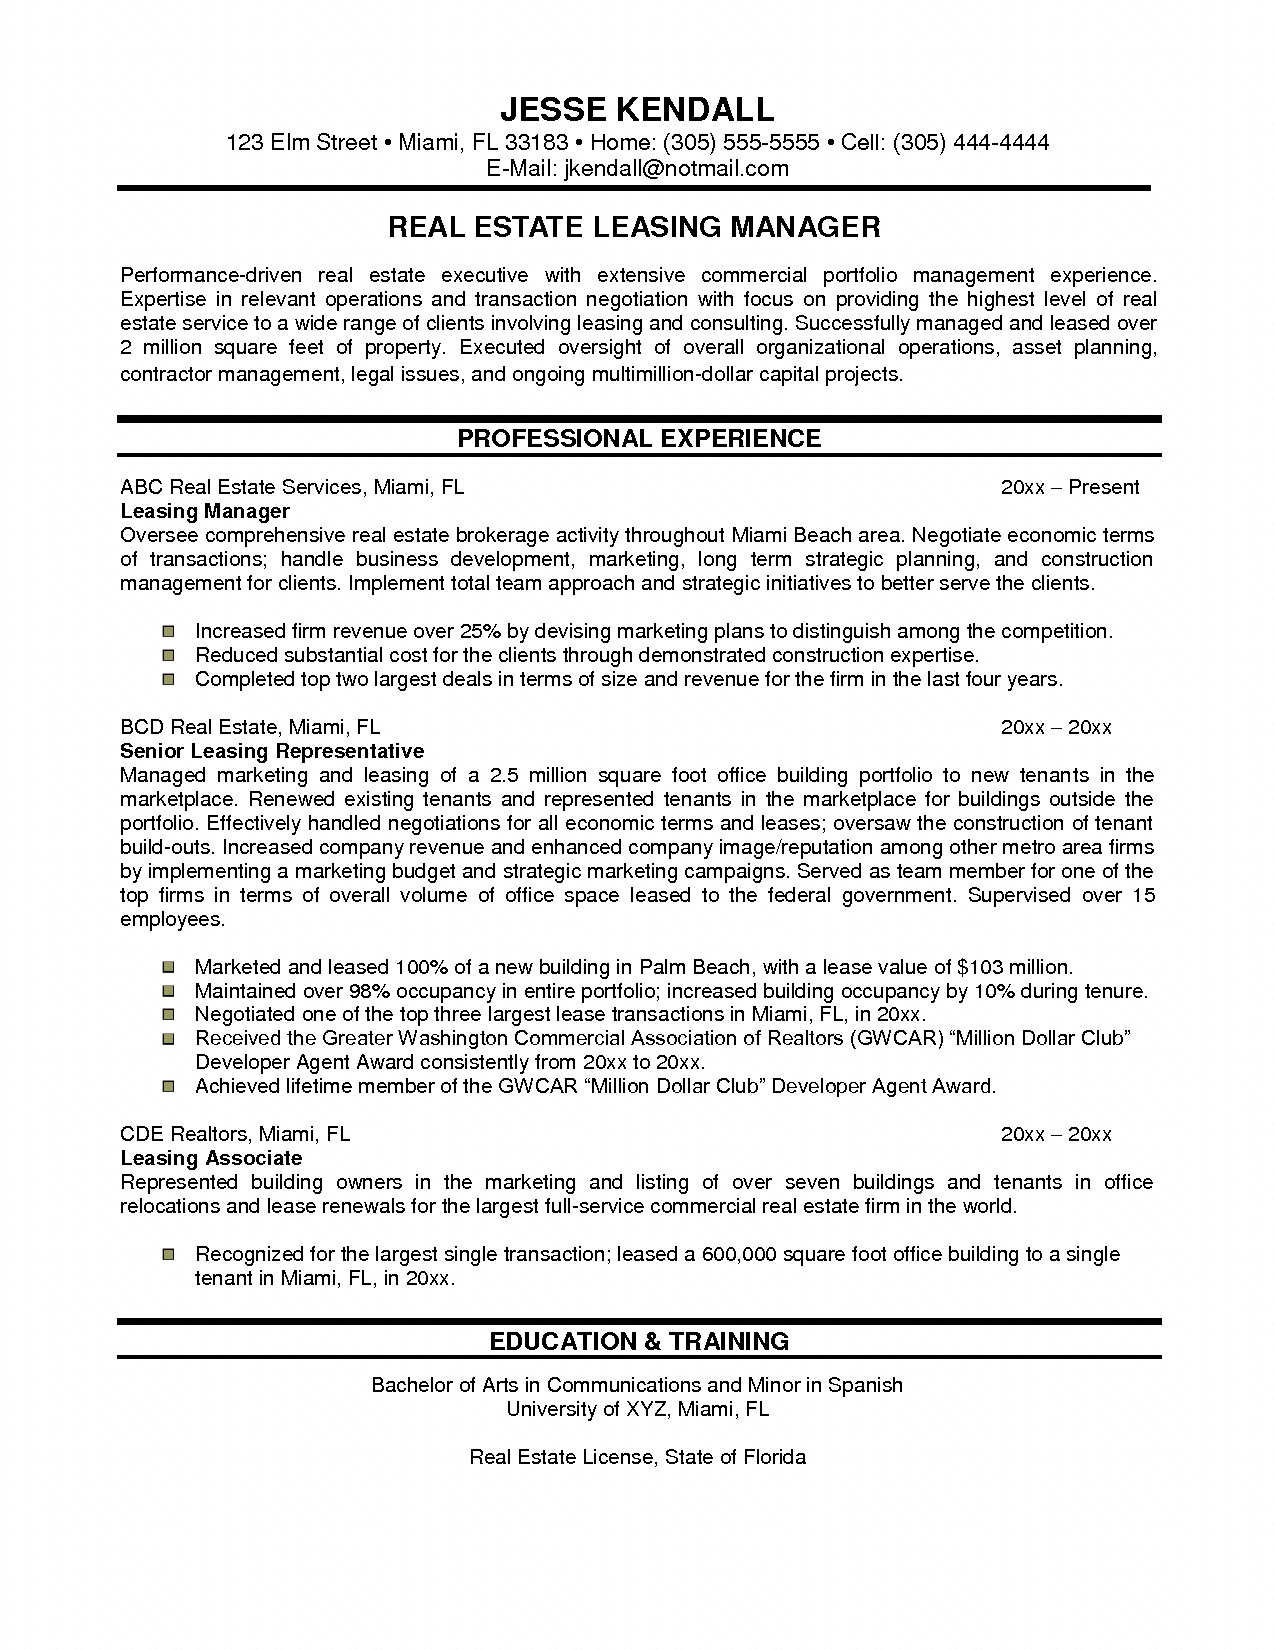 Real Estate Commission Letter Template - Mercial Property Manager Resume Samples Building Manager Resume